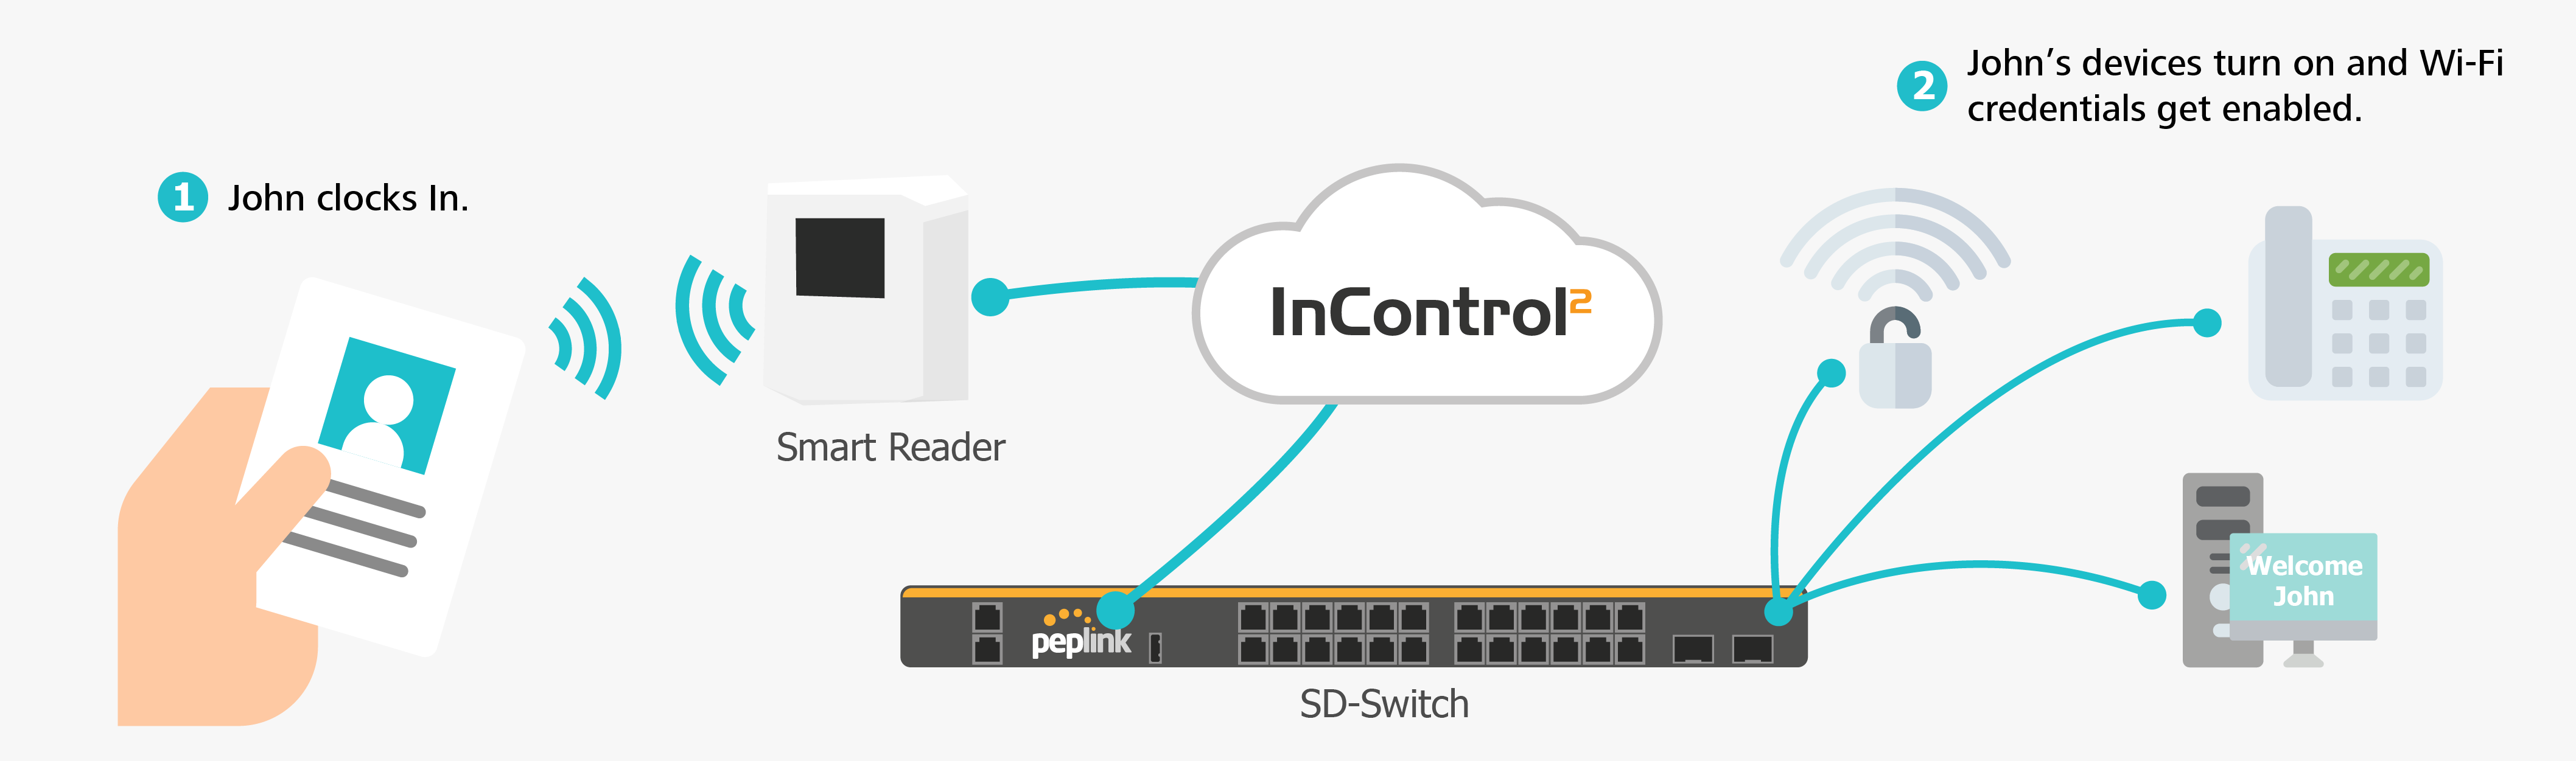 SD-Switch for an Intelligent Office